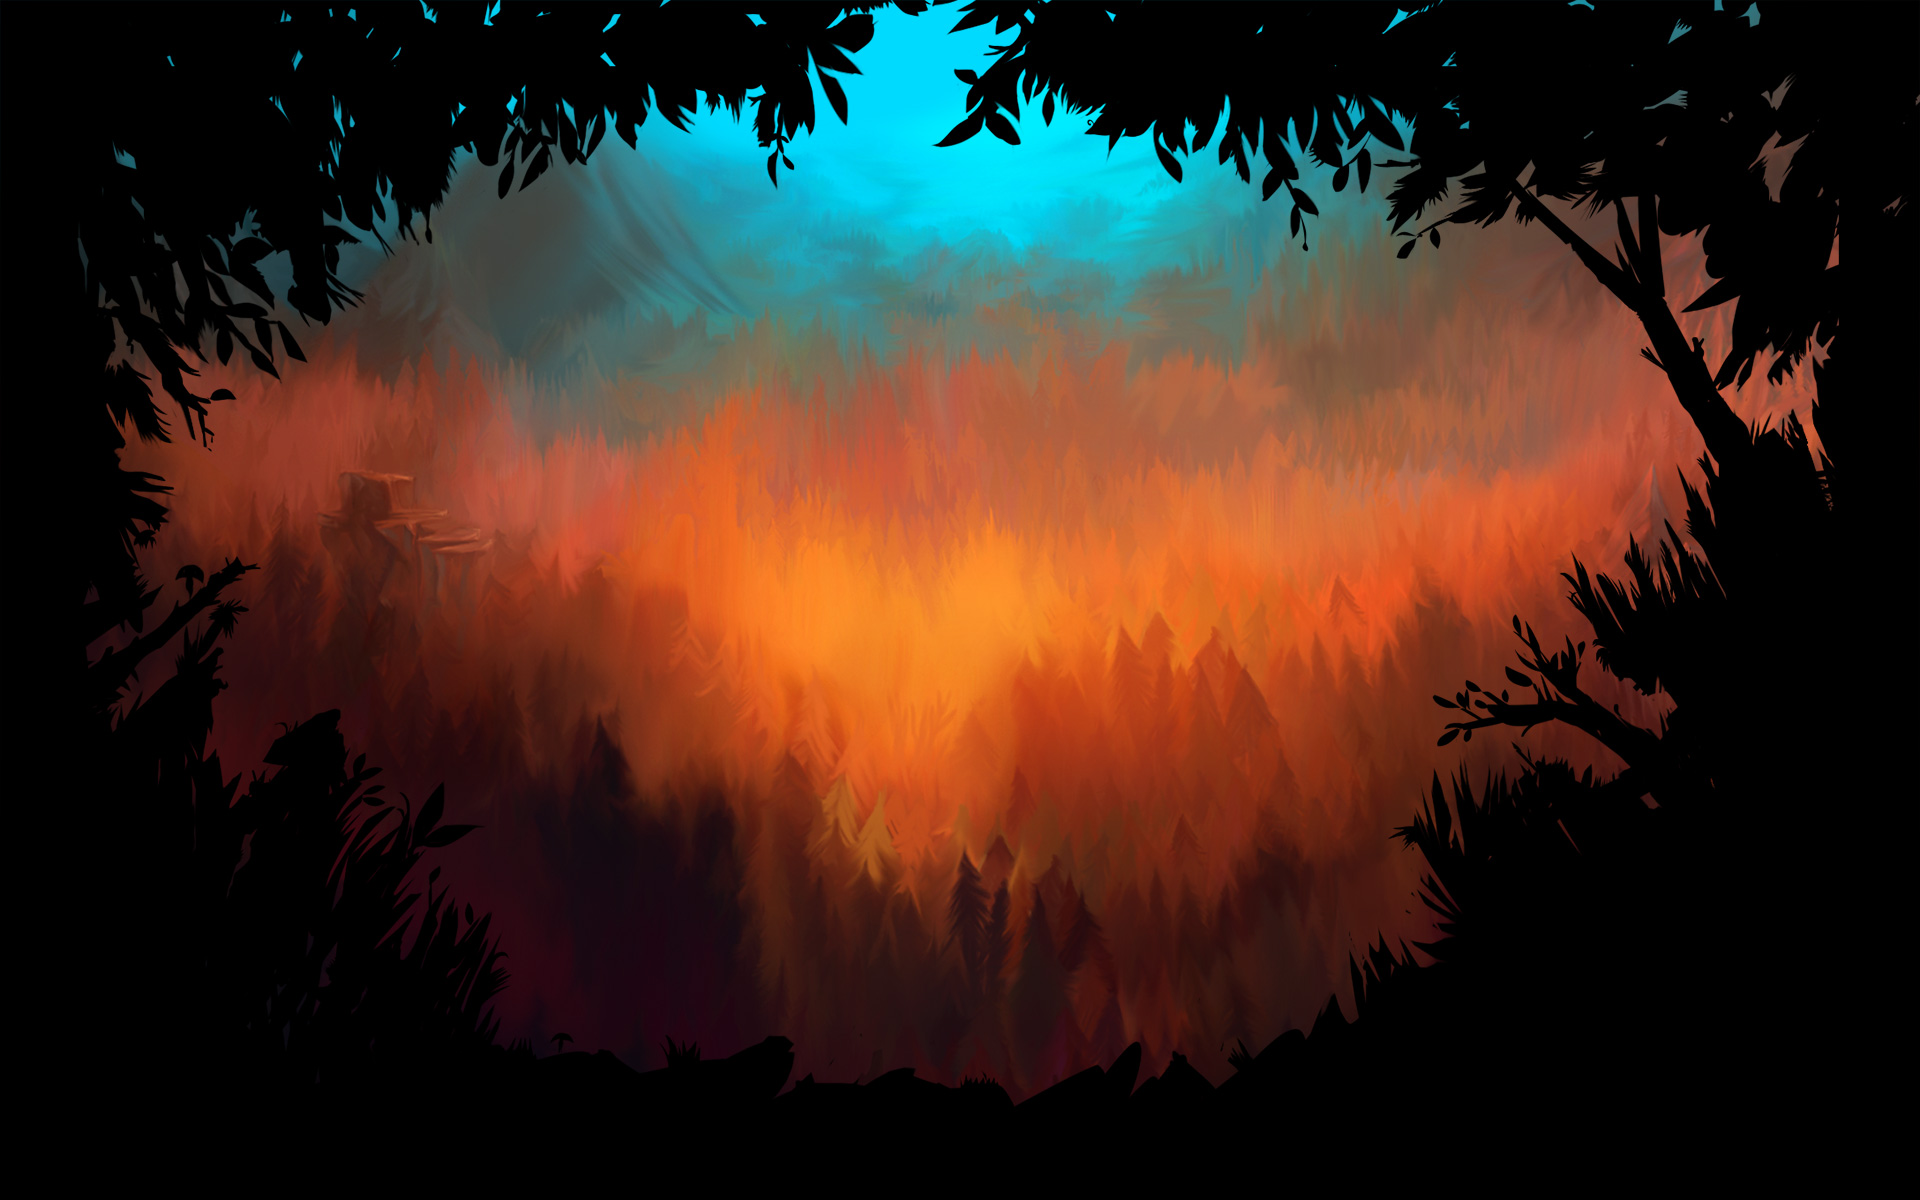 Steam Community Market Listings for 210170 Forest 1920x1200